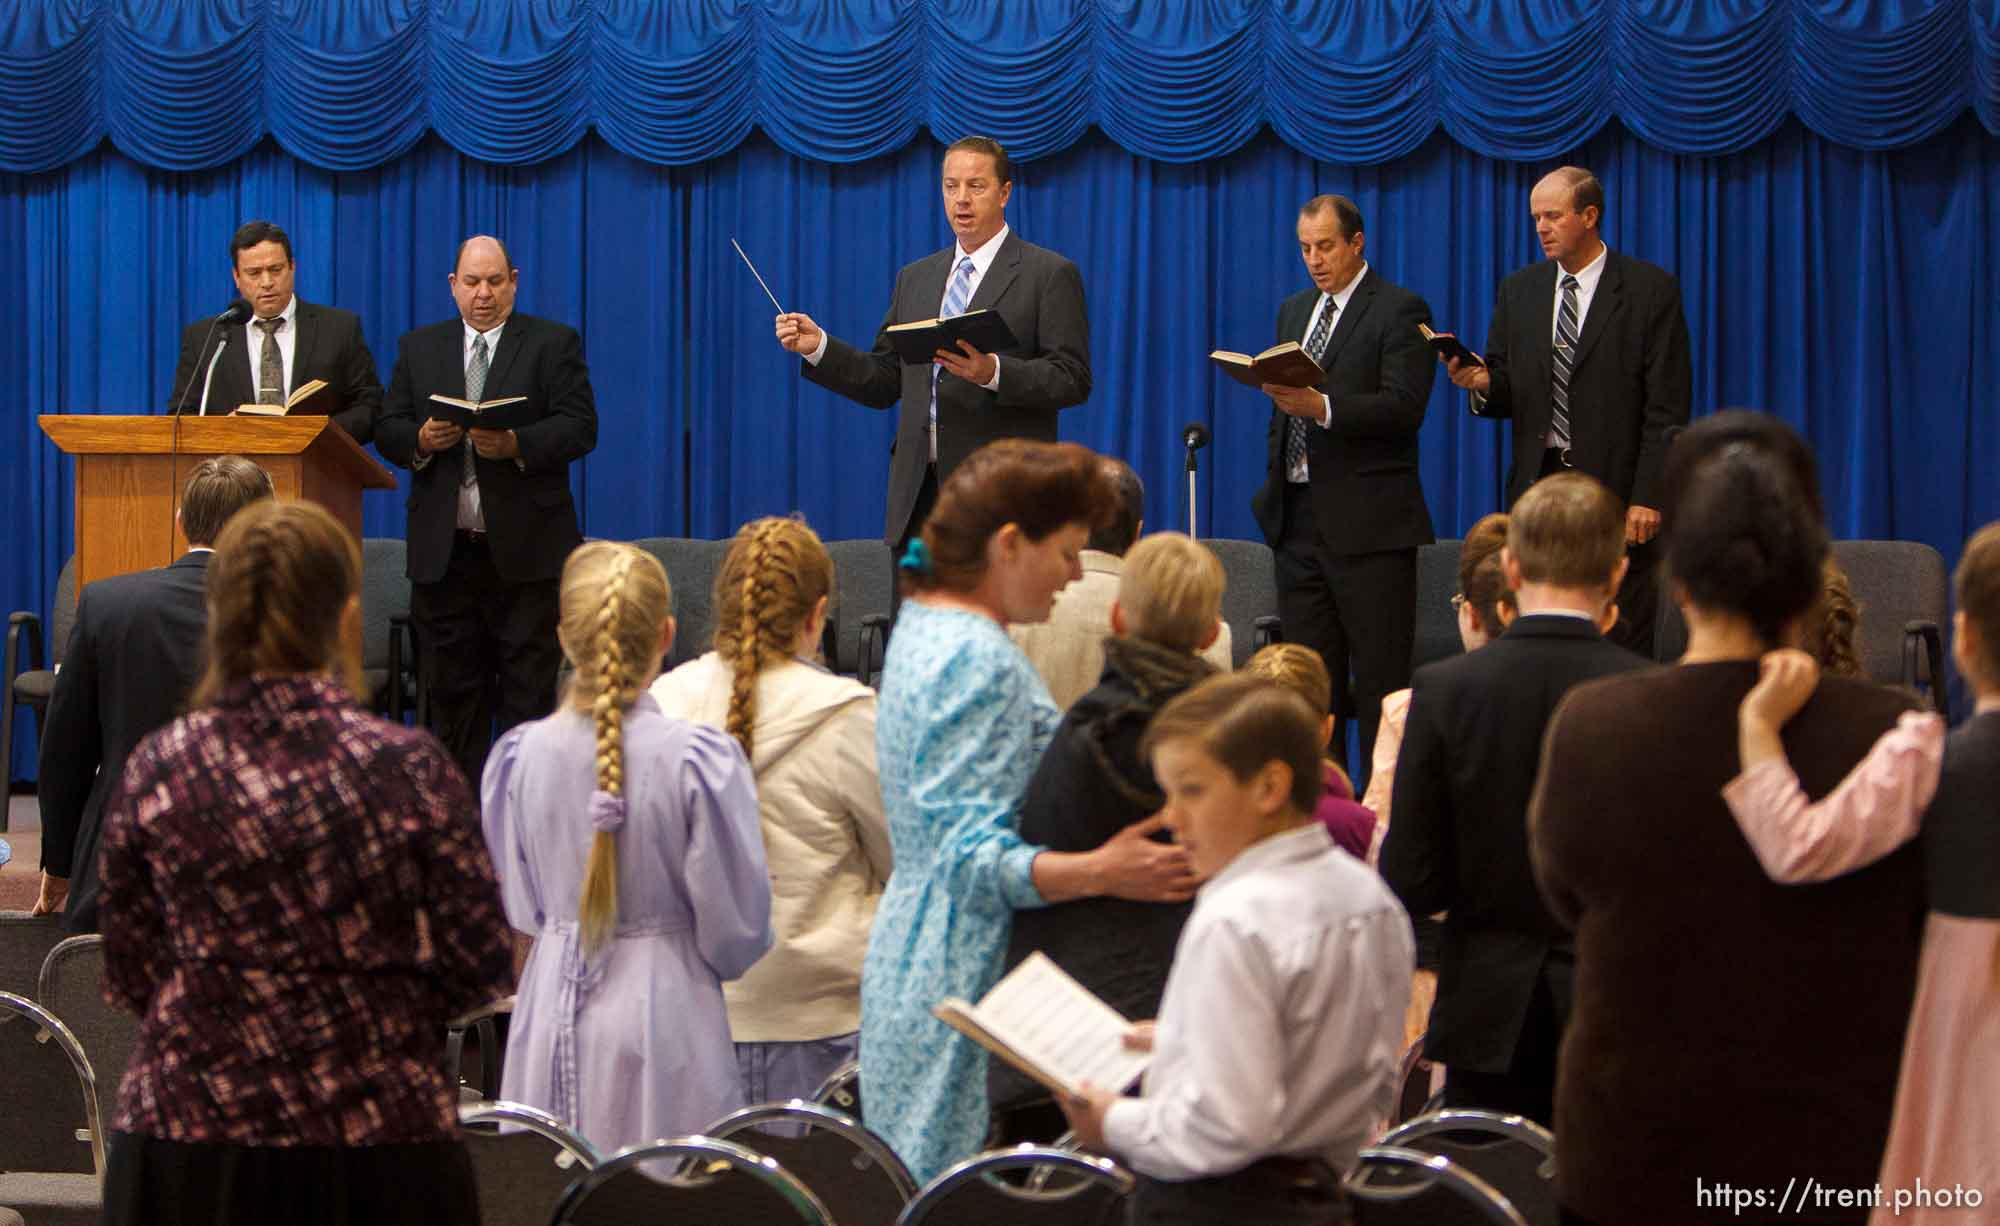 Trent Nelson | The Salt Lake Tribune Sam Allred leads the conjuration in a hymn during a church service of ex-FLDS members Sunday, February 17, 2013 in Hildale. Left to right on stage are William E. Jessop, Garth Warner, Allred, Dan Timpson and Royce Jessop